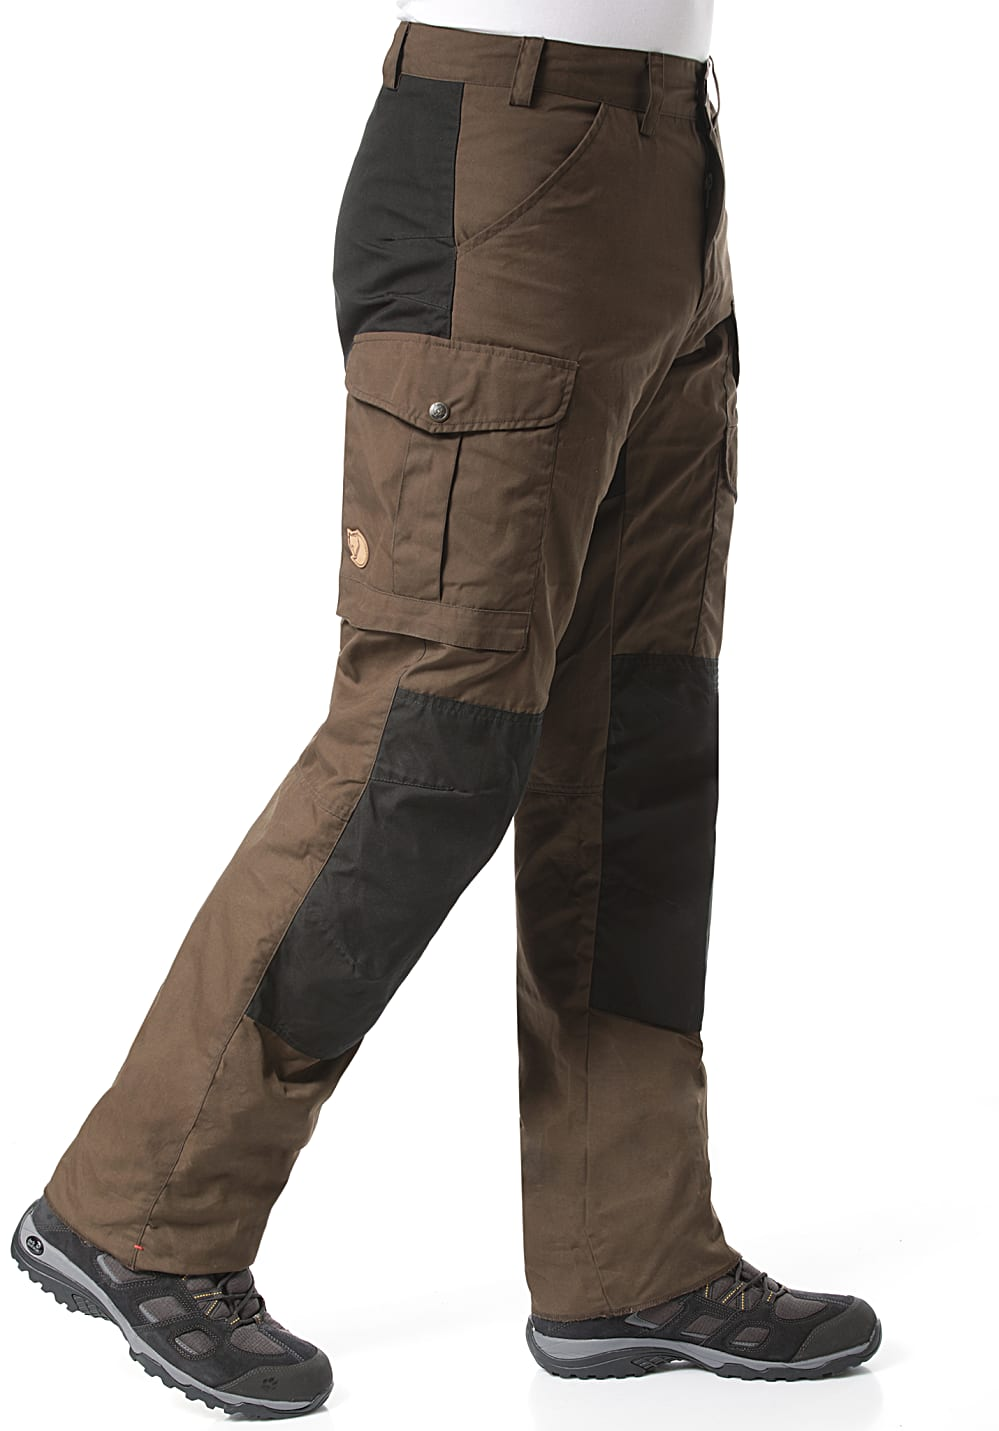 Fjäll Räven Barents Pro Winter Outdoorhose Trekkinghose